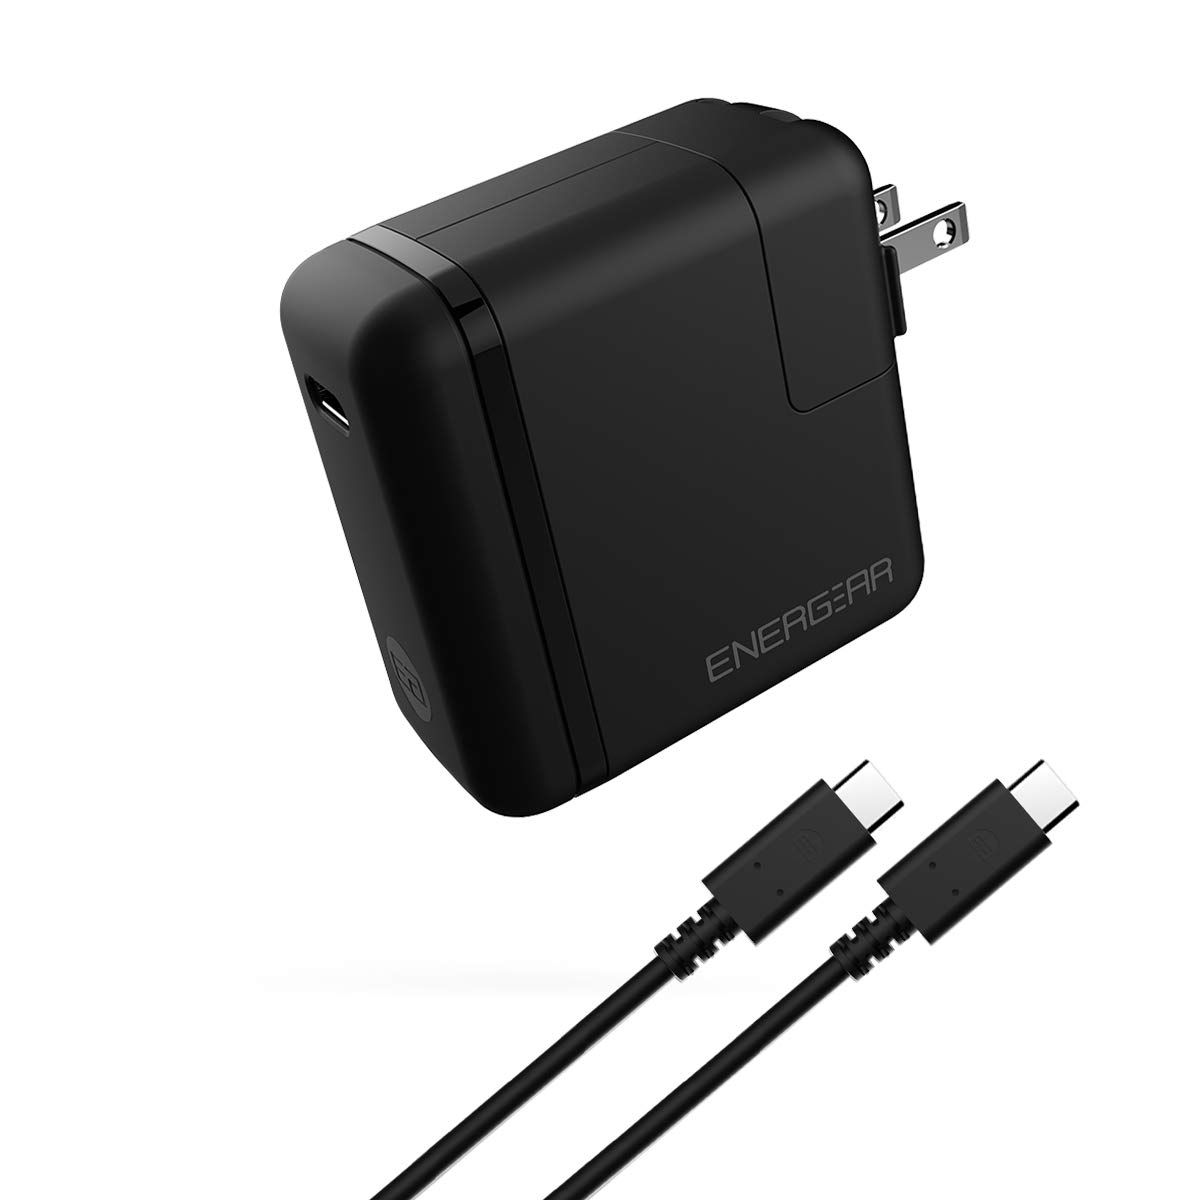 ENERGEAR 85W USB C Charger, Foldable Plug, USB-IF/UL Certified, PD2.0 USB-C Wall Charger, C-C Cable Included, Compatible with MacBook Pro/Air 2018, Lenovo Chromebook, Acer Swift 7 and More -Black by EG ENERGEAR